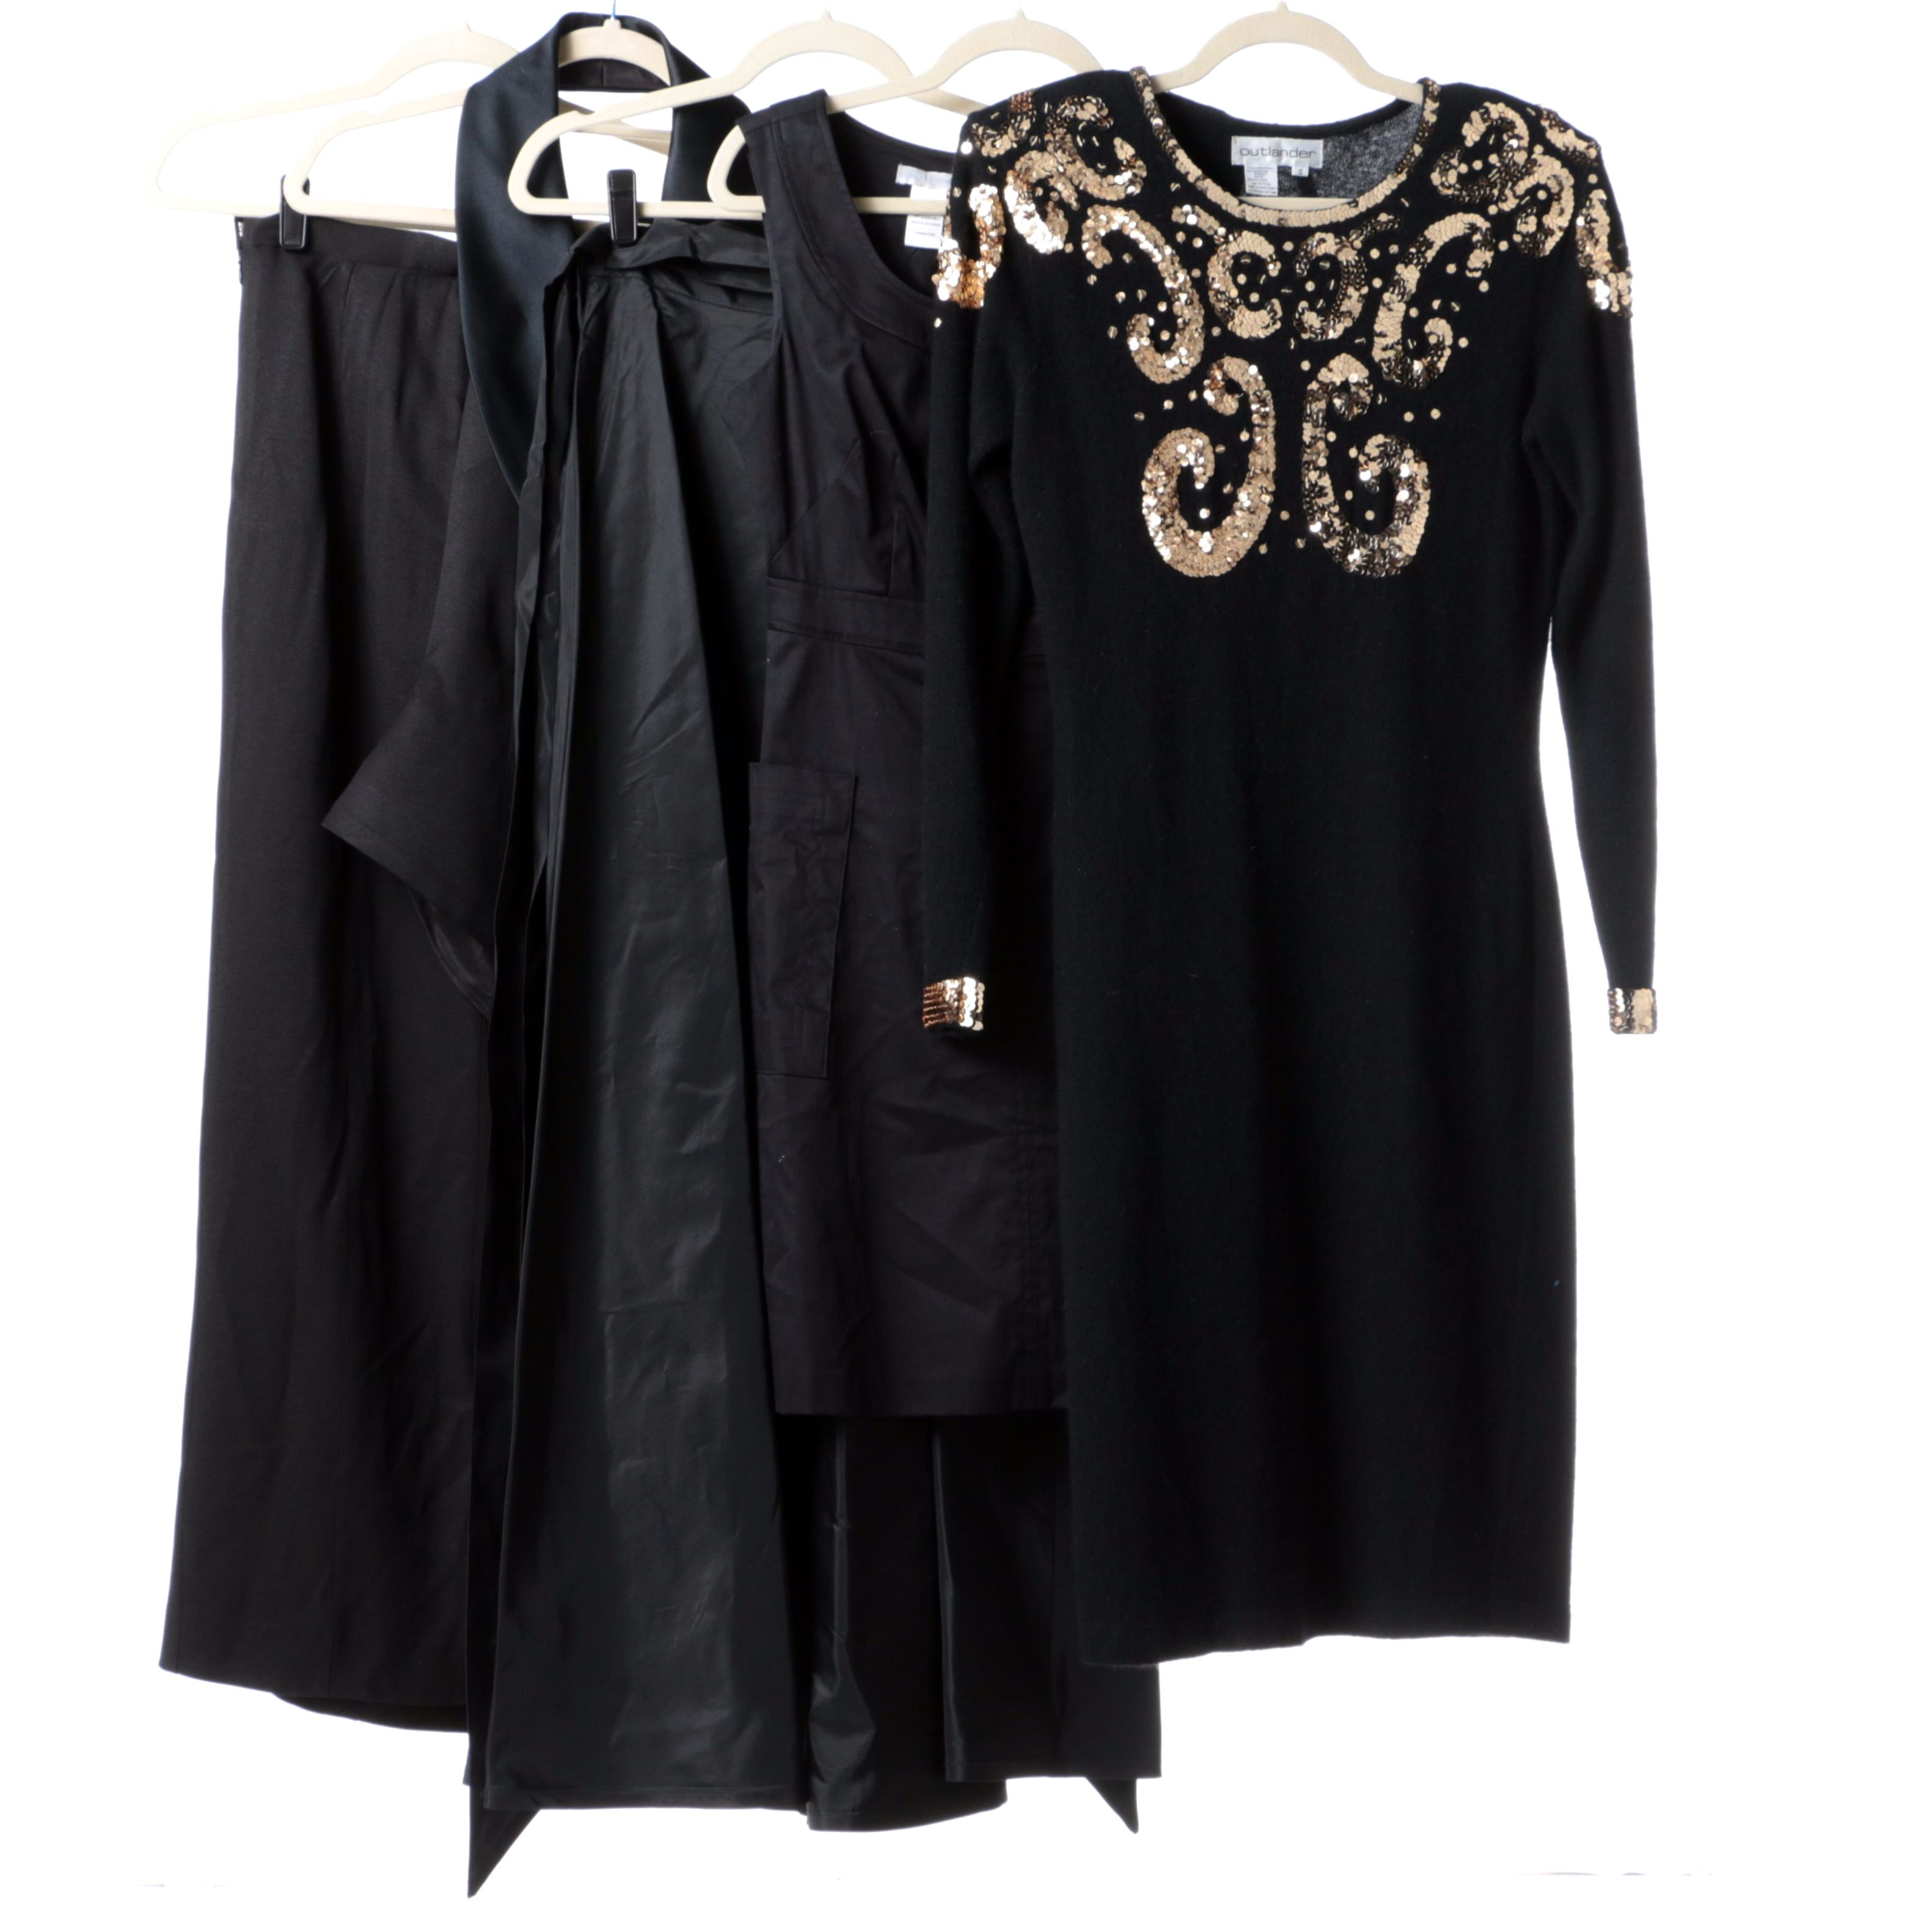 Women S Evening Wear Including Lord Taylor Ebth